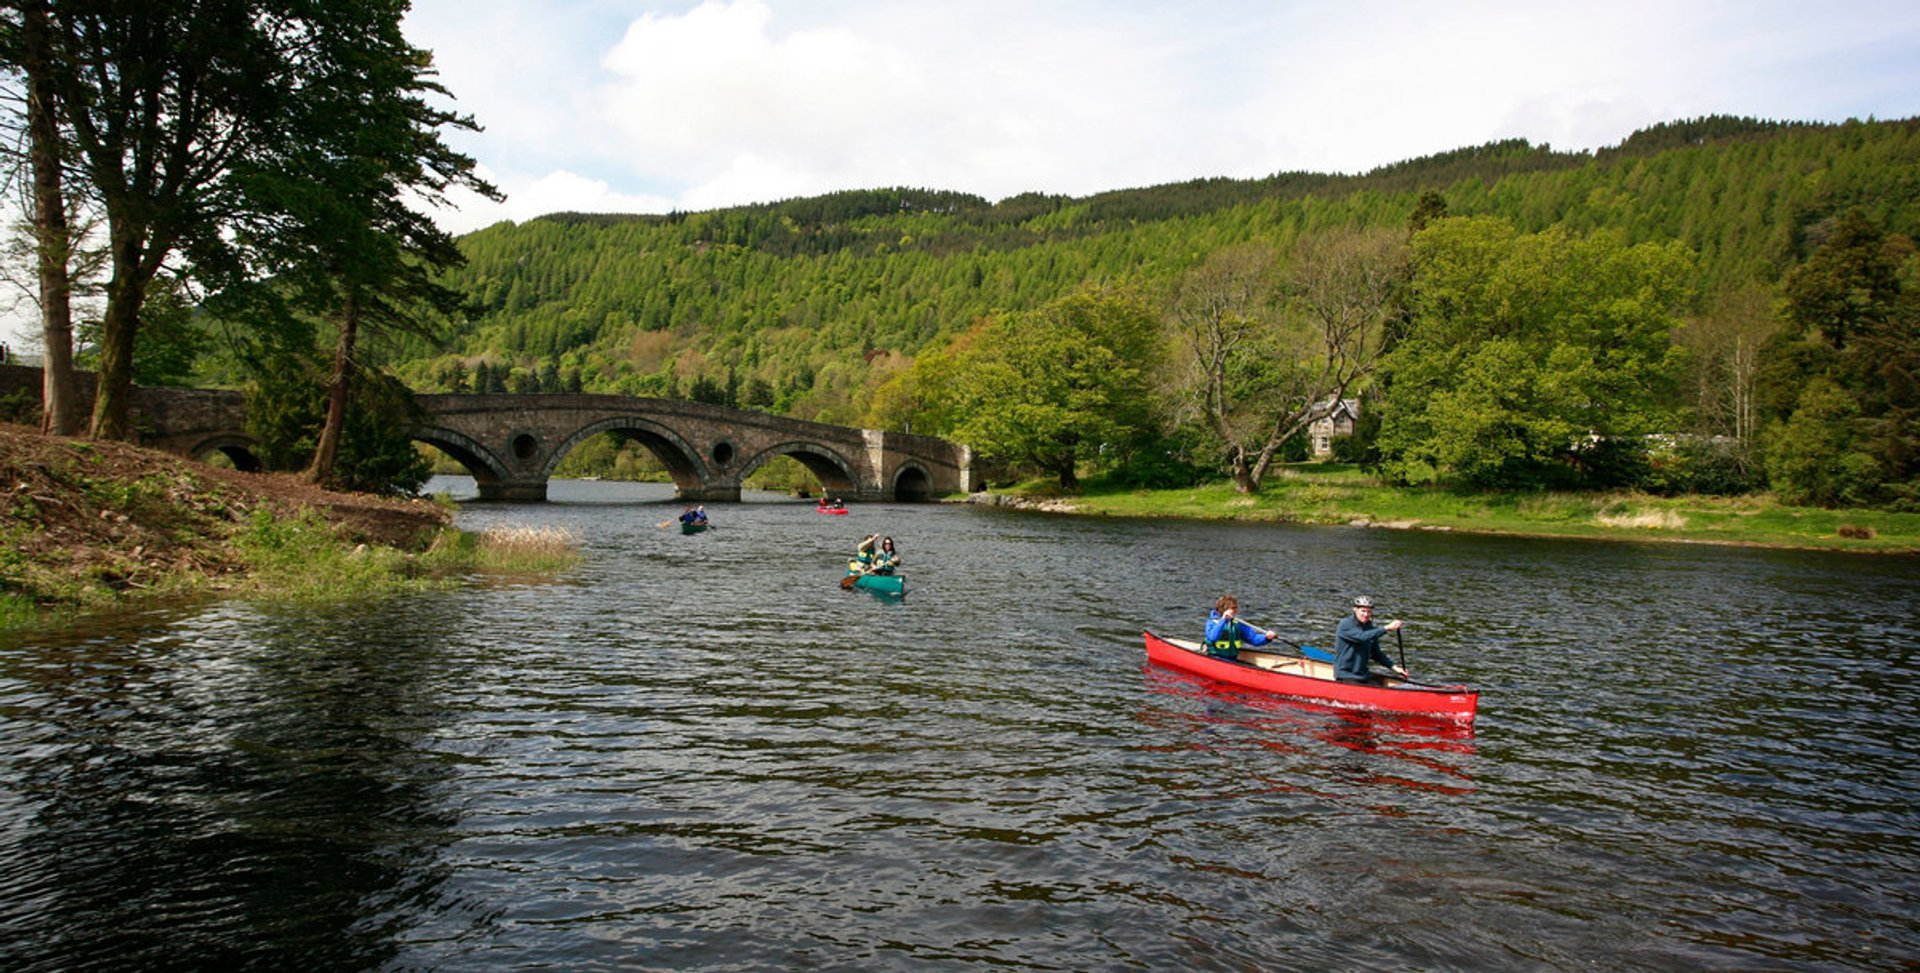 Canoeing from Loch Tay to River Tay